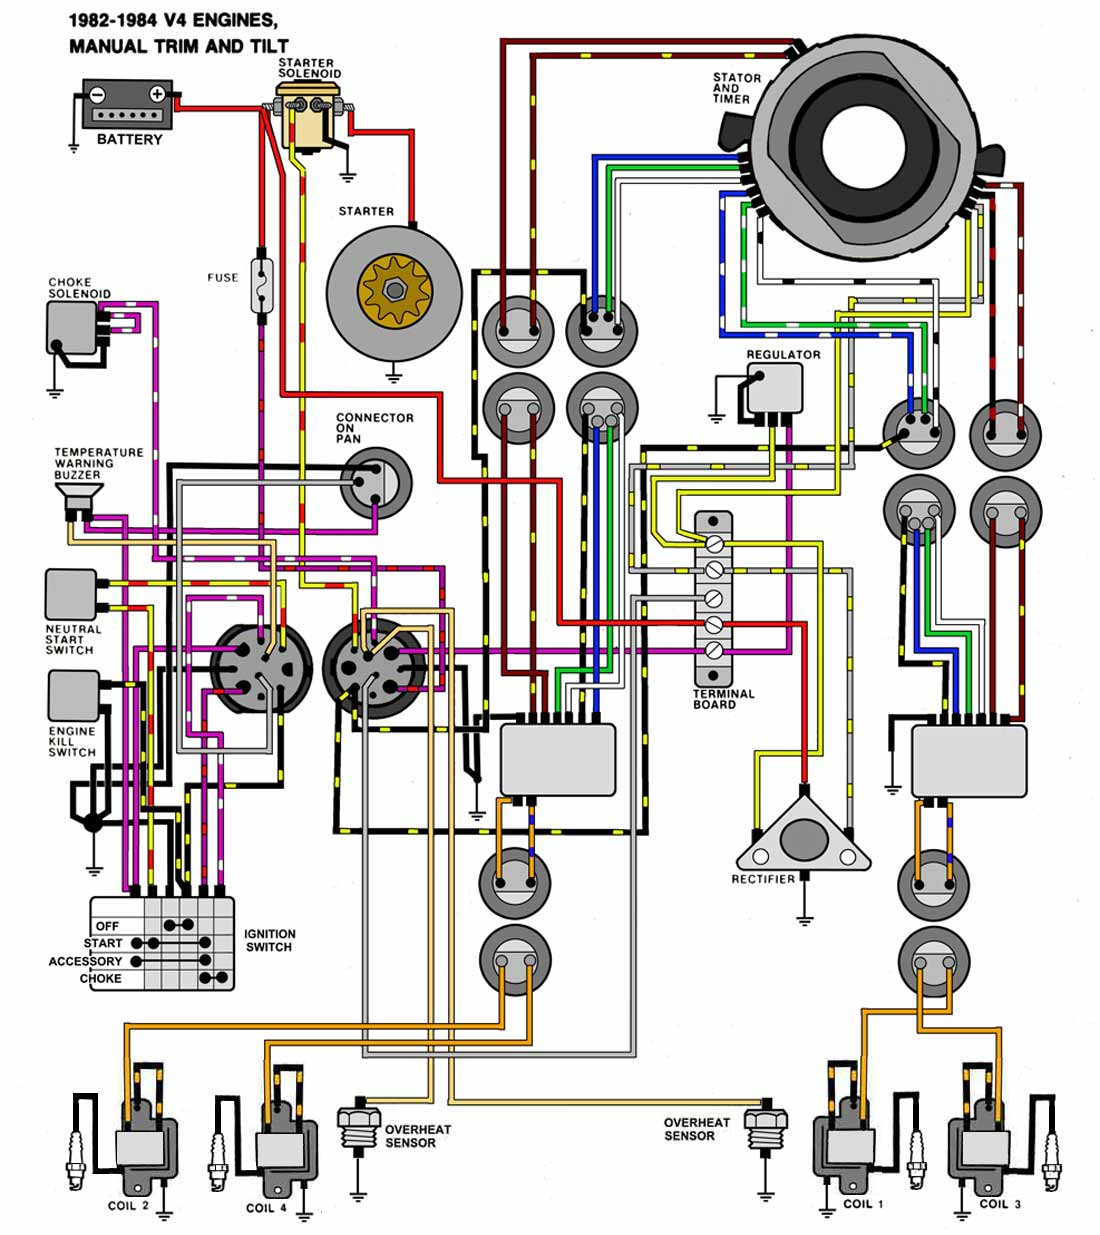 82_84_V4_NOTNT evinrude ignition wiring diagram evinrude 40 hp outboard diagrams  at readyjetset.co